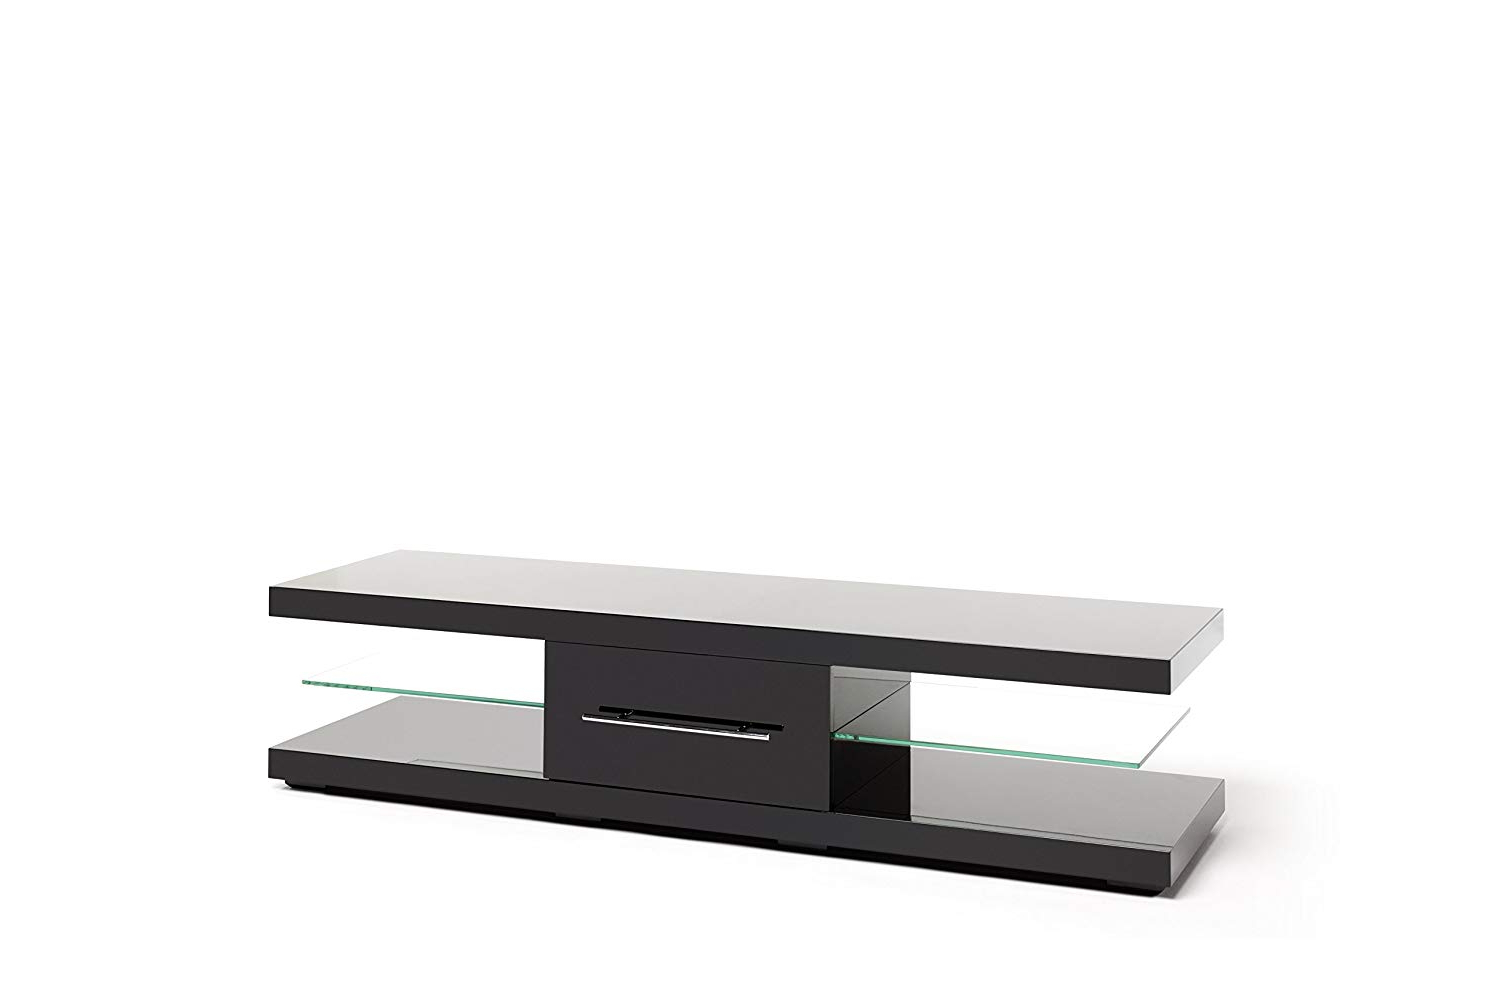 Favorite Techlink Echo Xl Tv Stand / Tv Unit / Tv Furniture Cabinet For Throughout Techlink Tv Stands Sale (View 5 of 20)